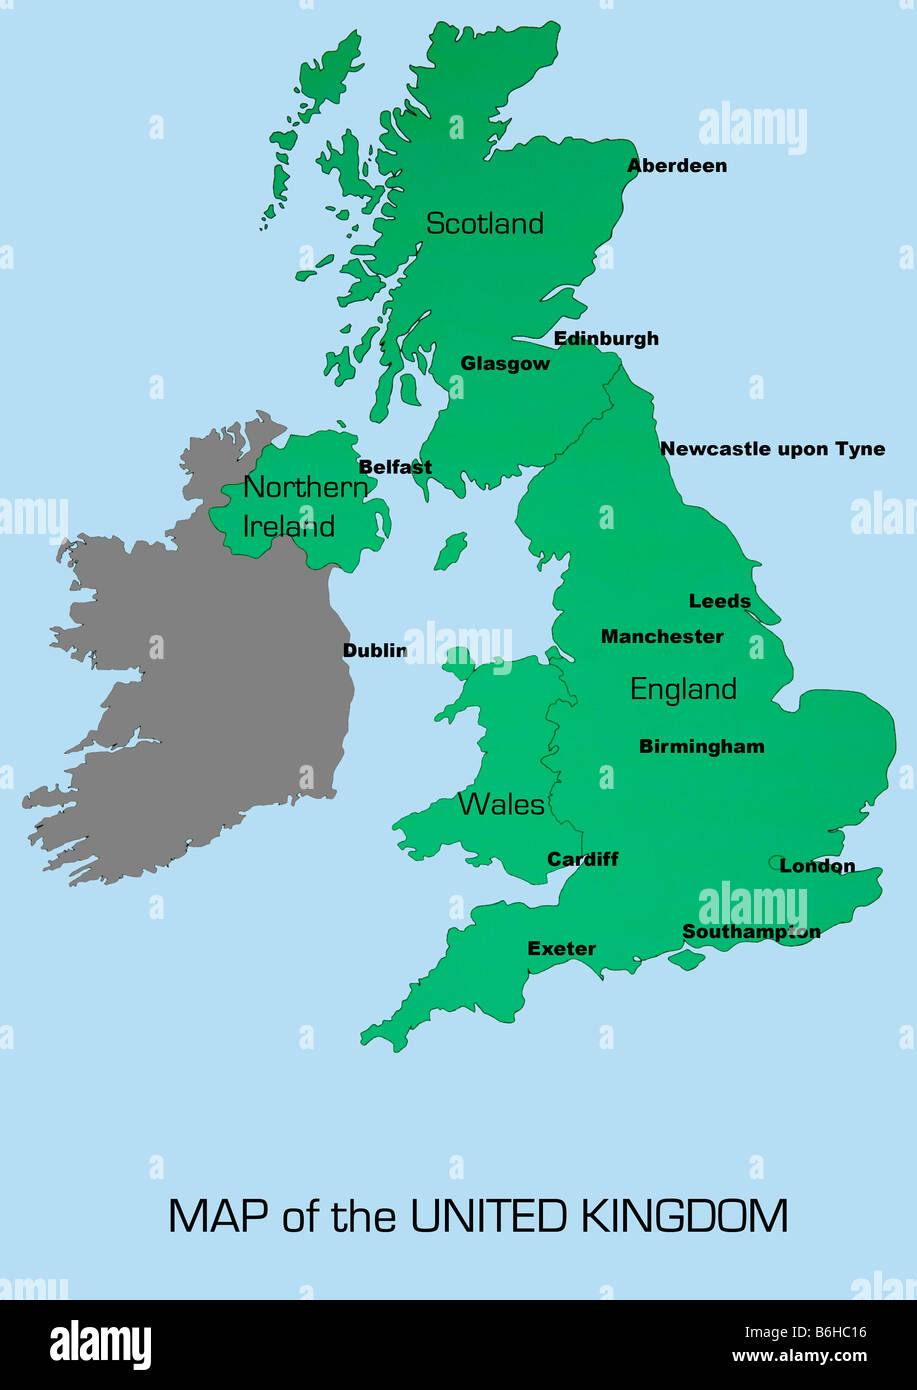 UK map showing England Scotland Wales and Northern Ireland with